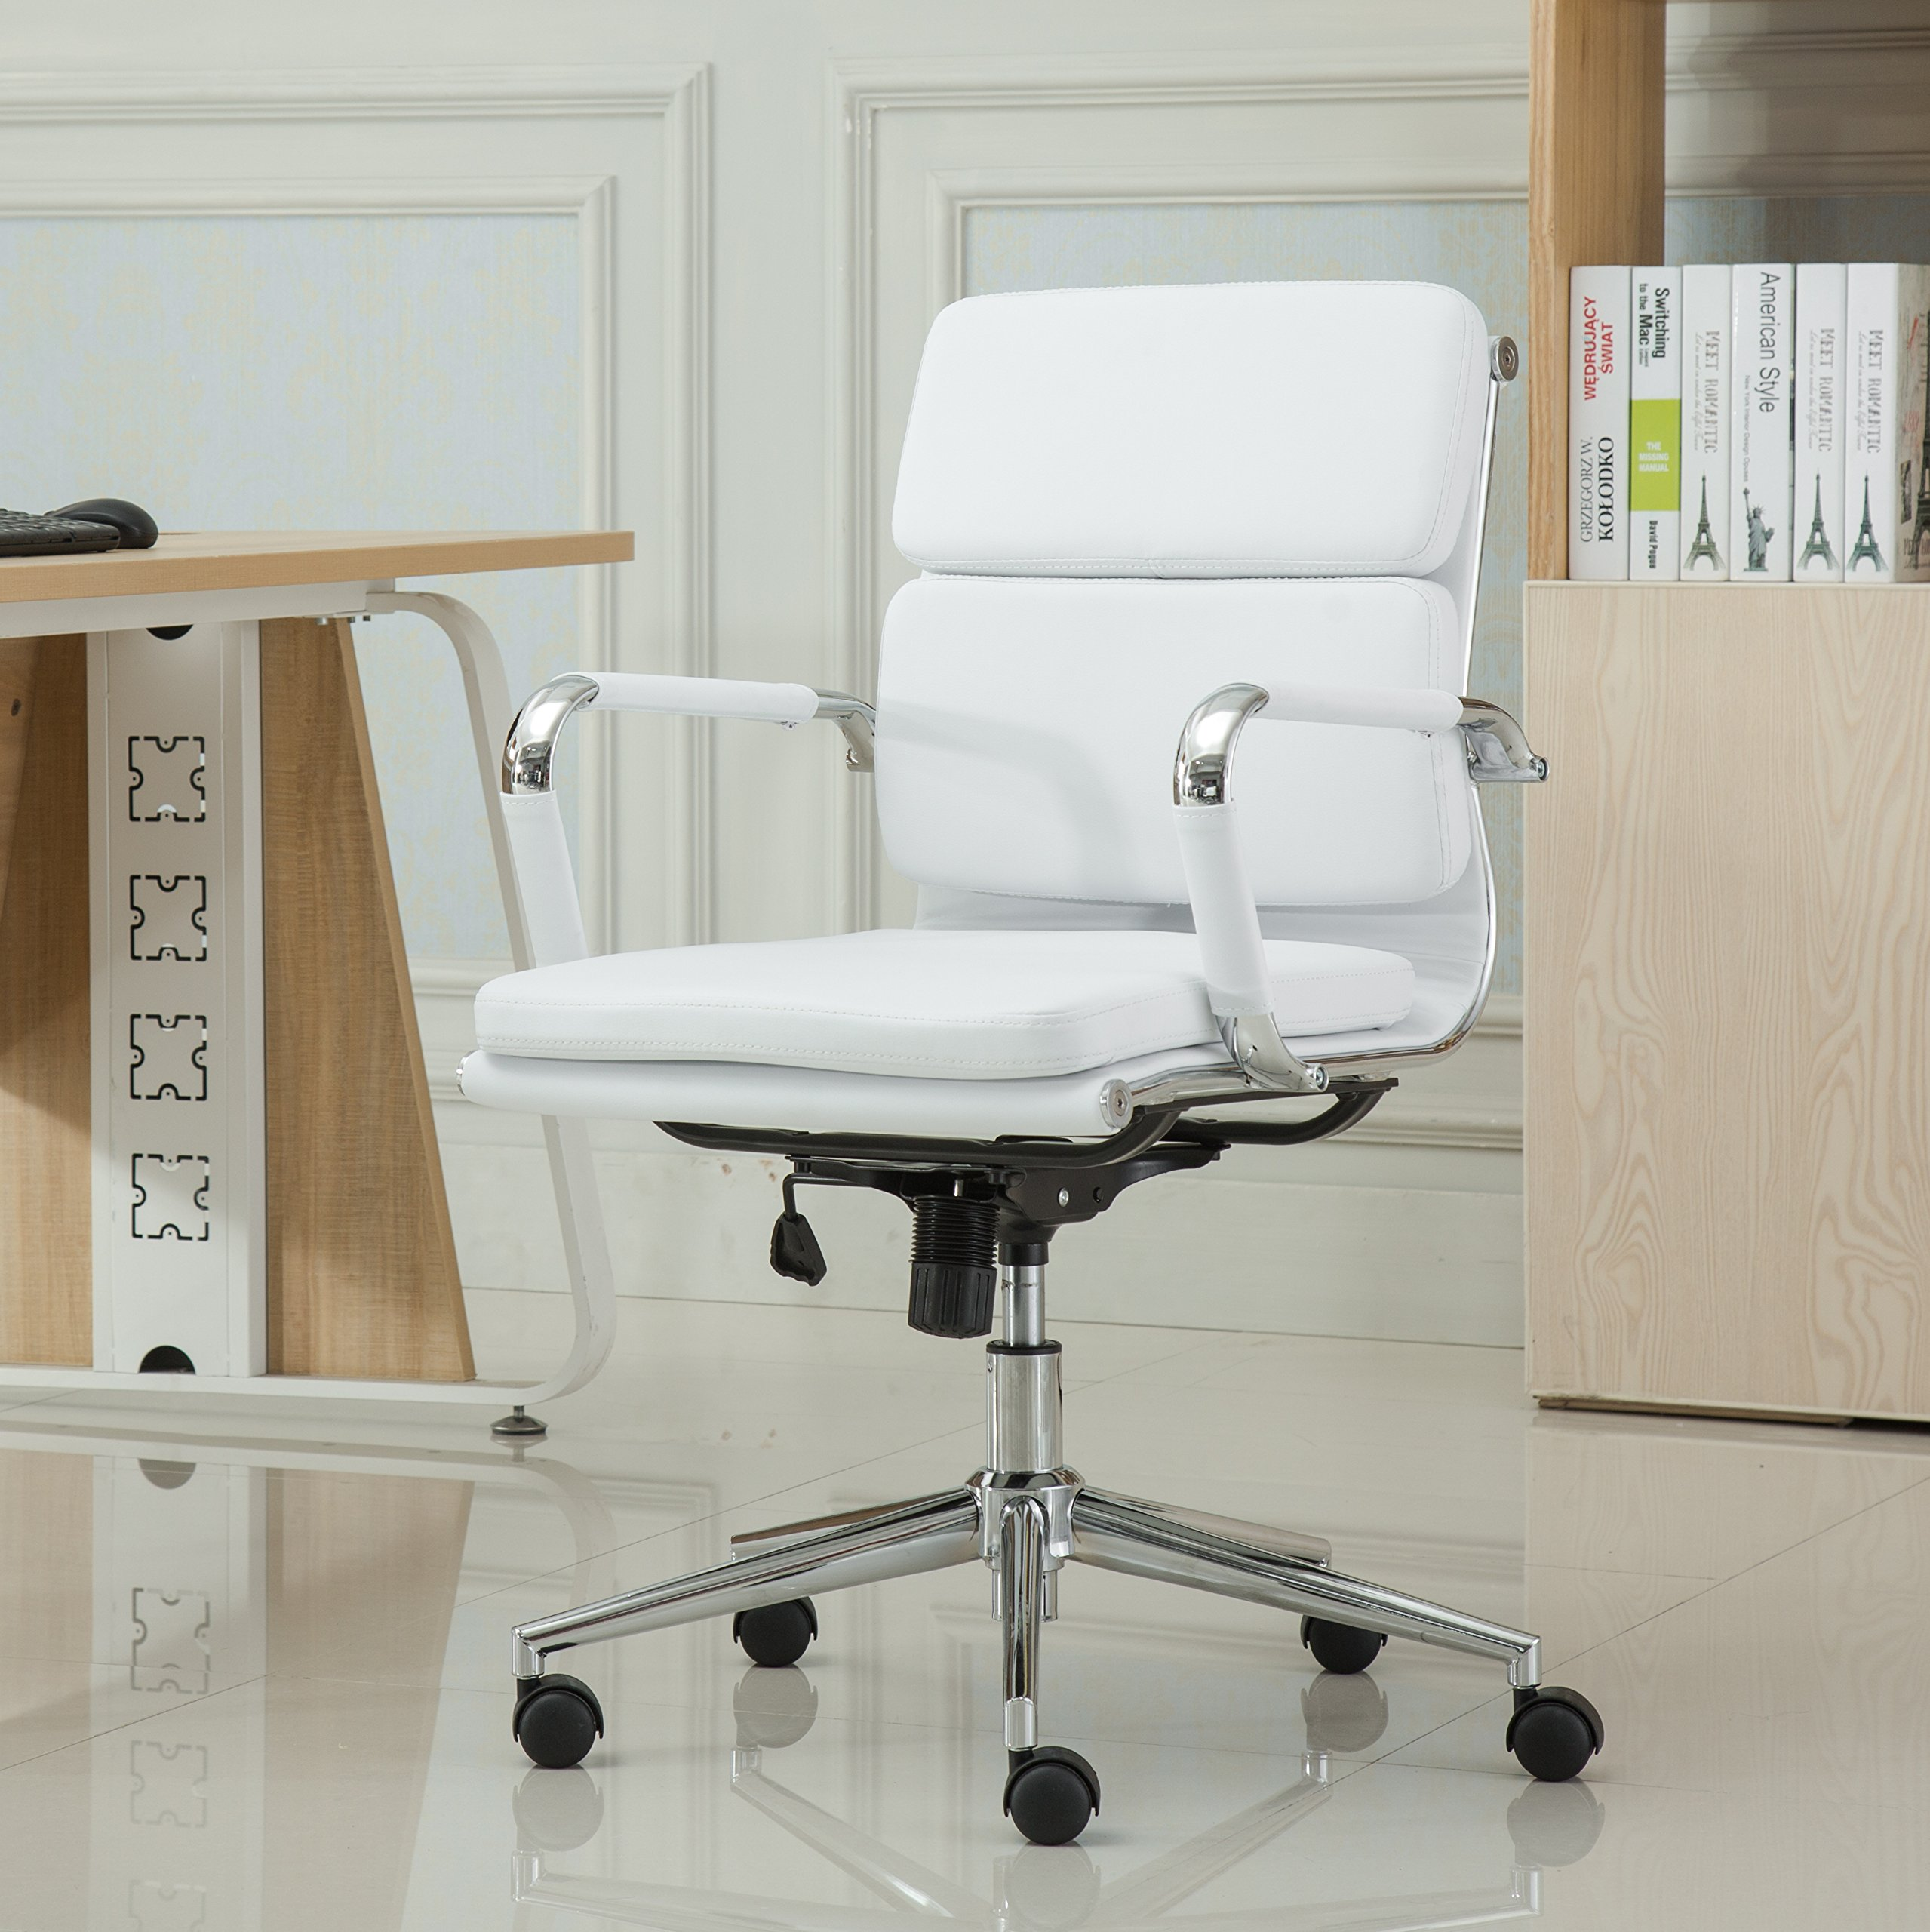 Roundhill Furniture Modica Chromel Contemporary Low Back Office Chair, White